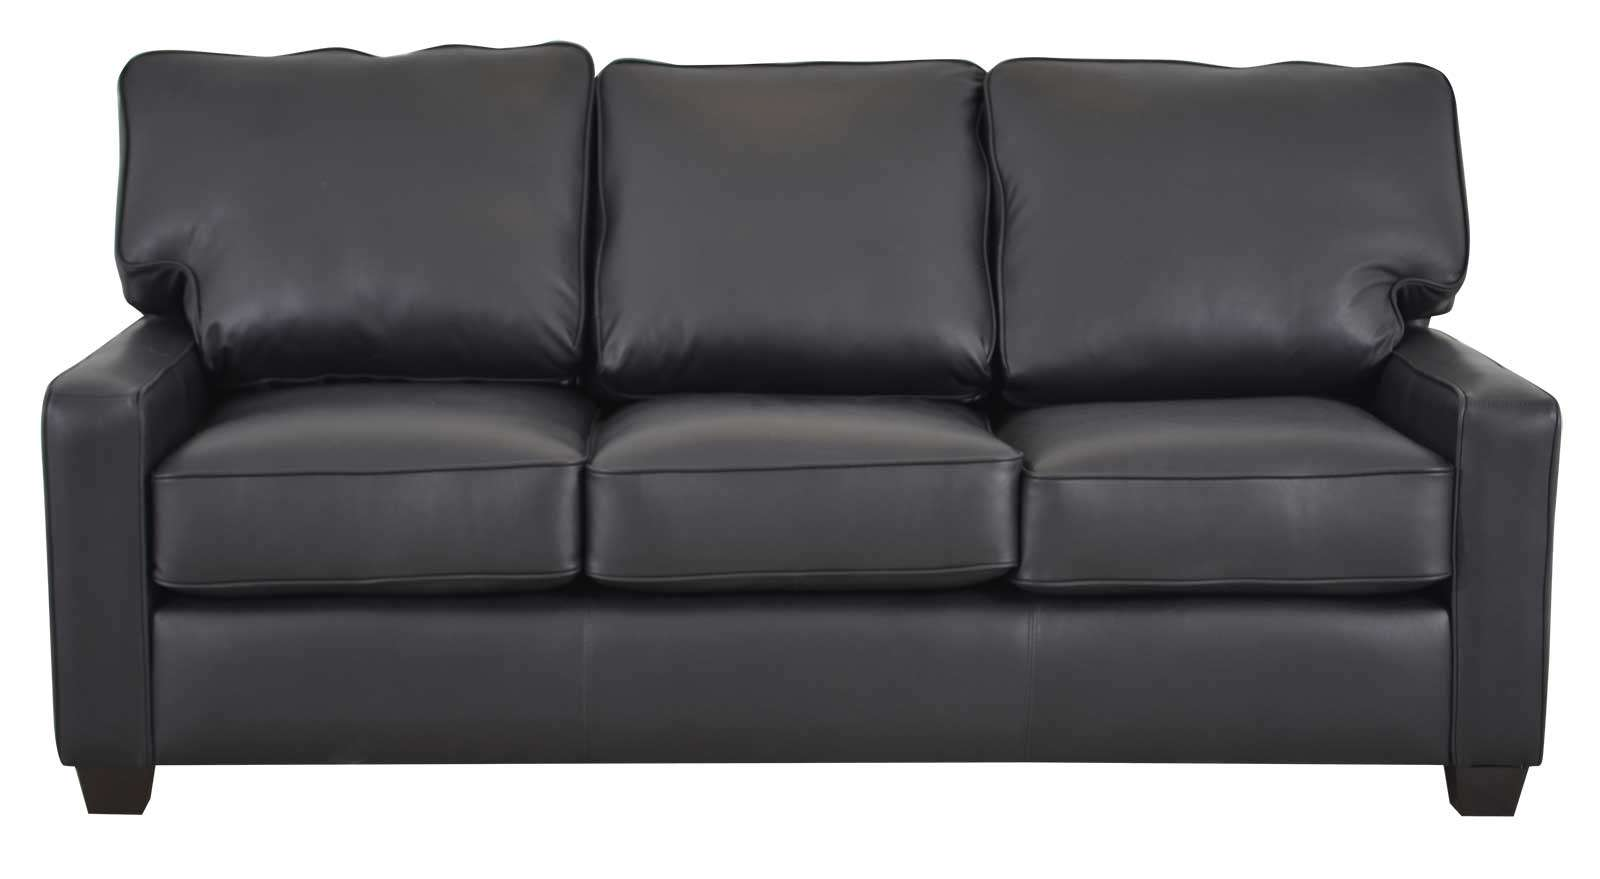 The Black Leather Sofa